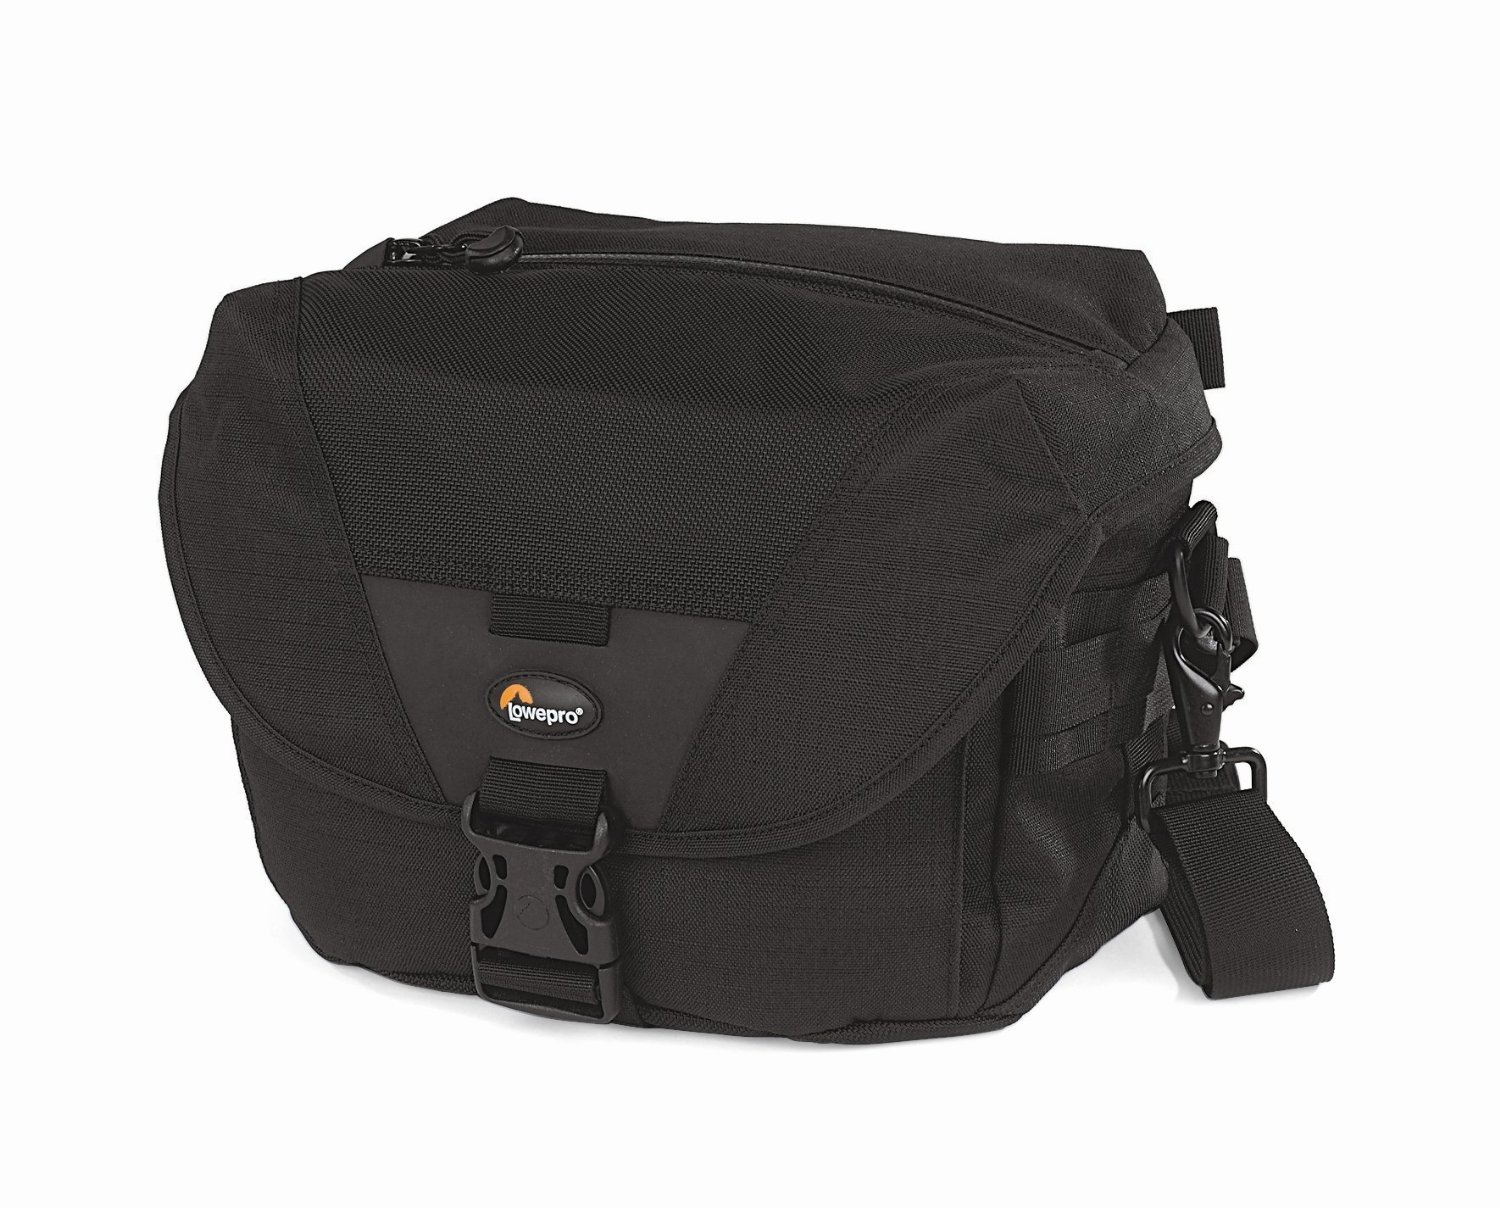 Lowepro Stealth Reporter D100 AW Camera Bag